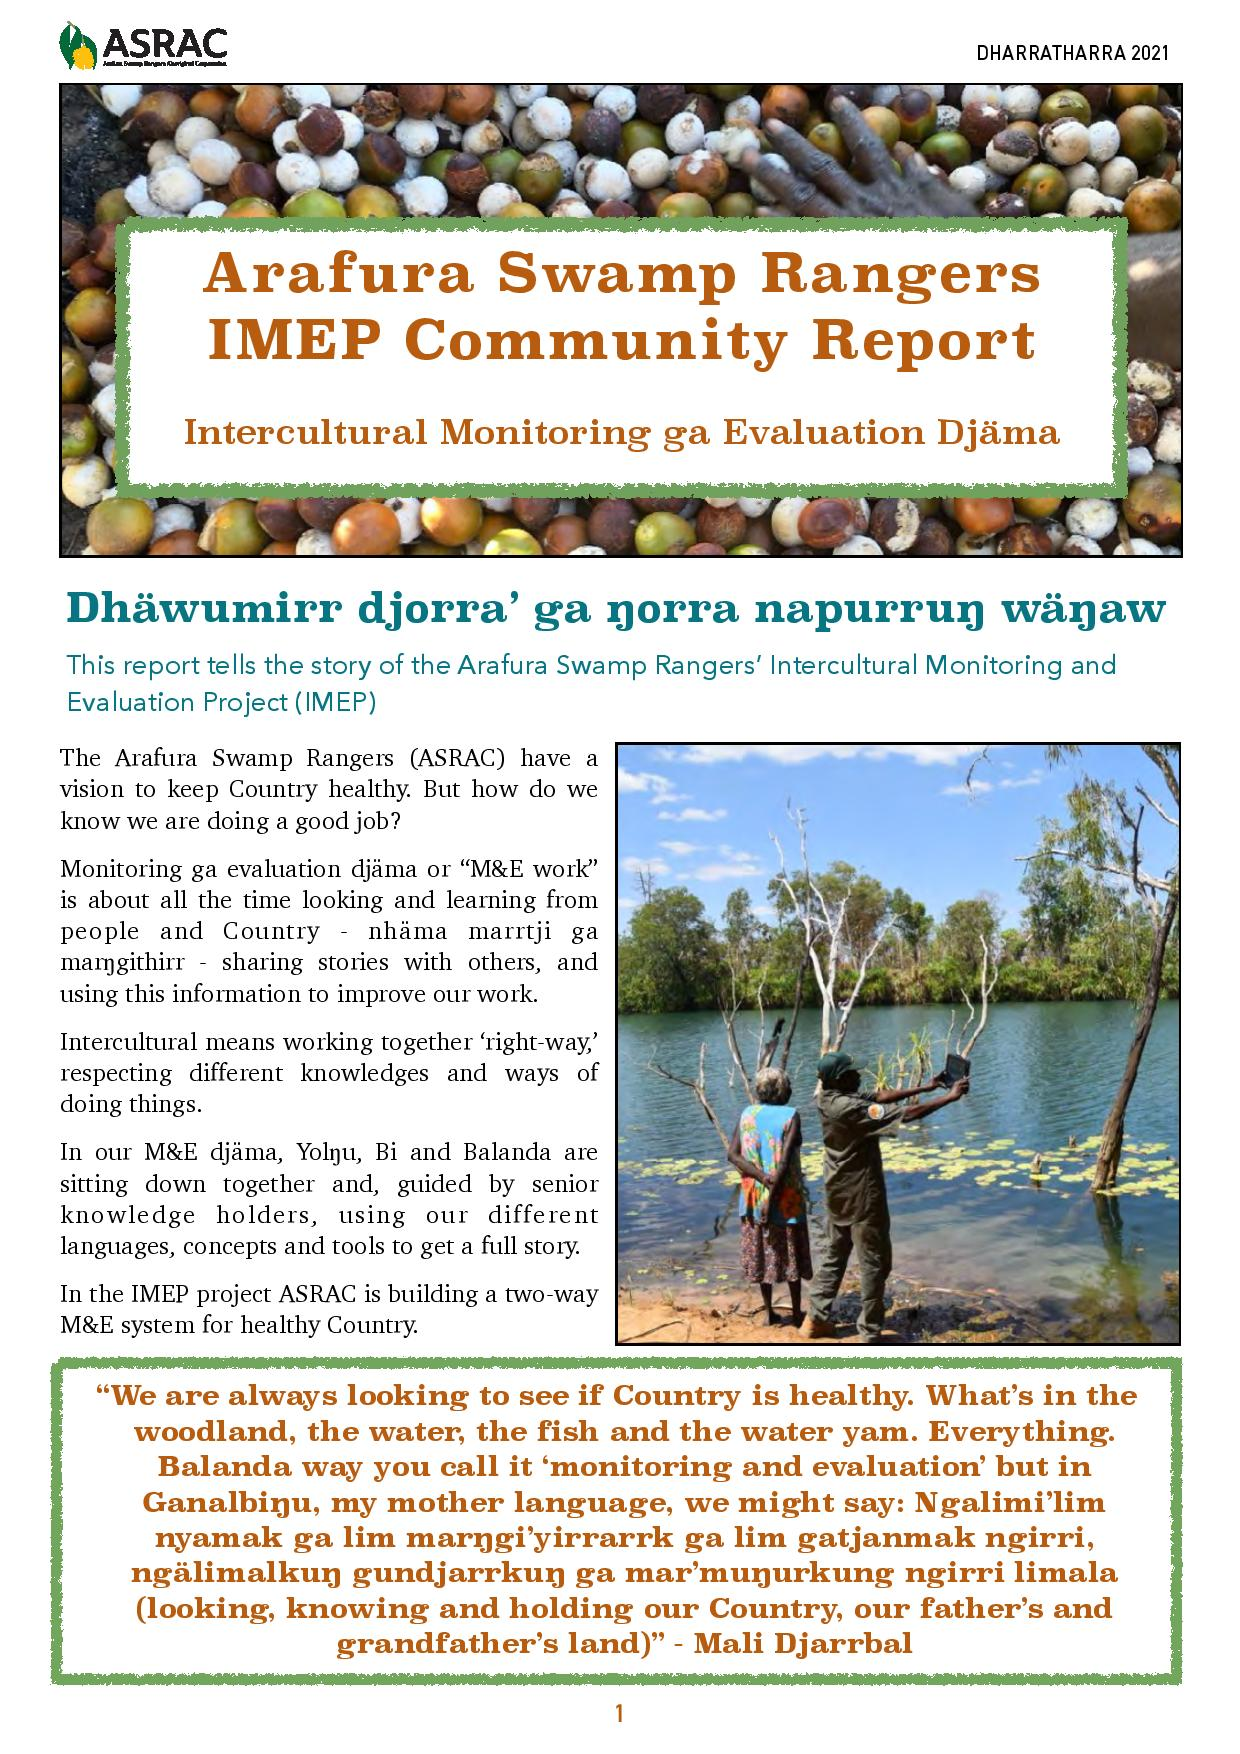 ASRAC_IMEPCommunityReport_Low-res-pages-1-page-001.jpg